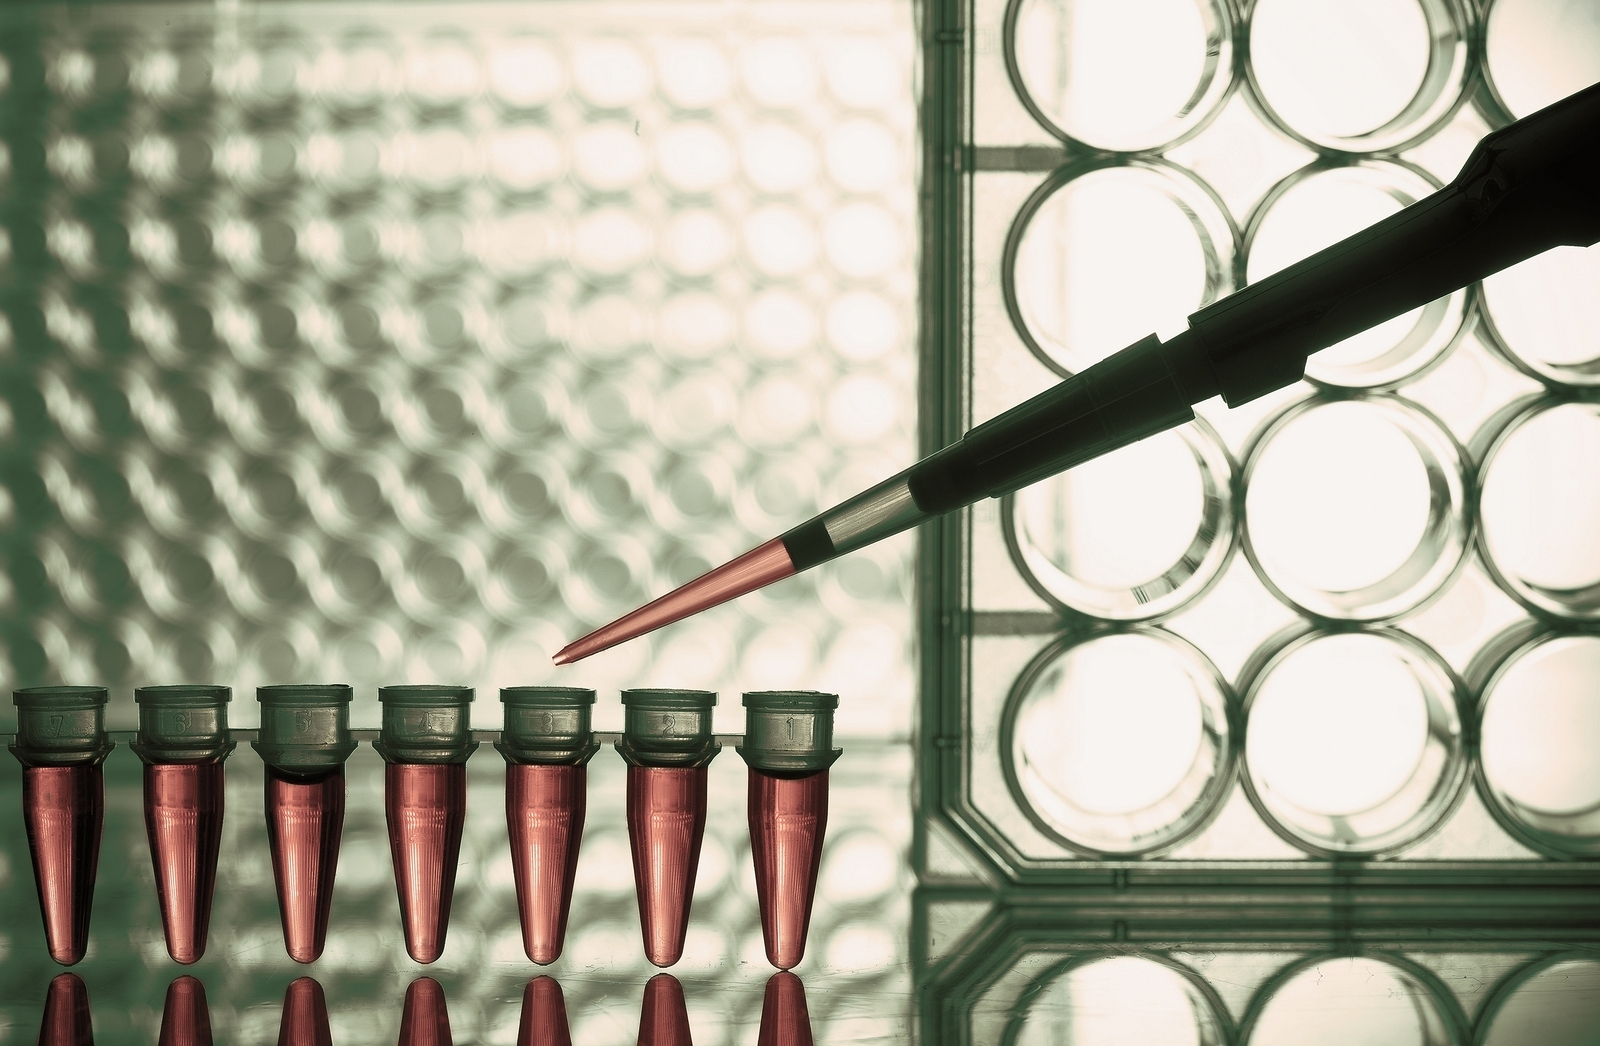 Introducing First Quality Control Test for Therapeutic Tissue Stem Cells